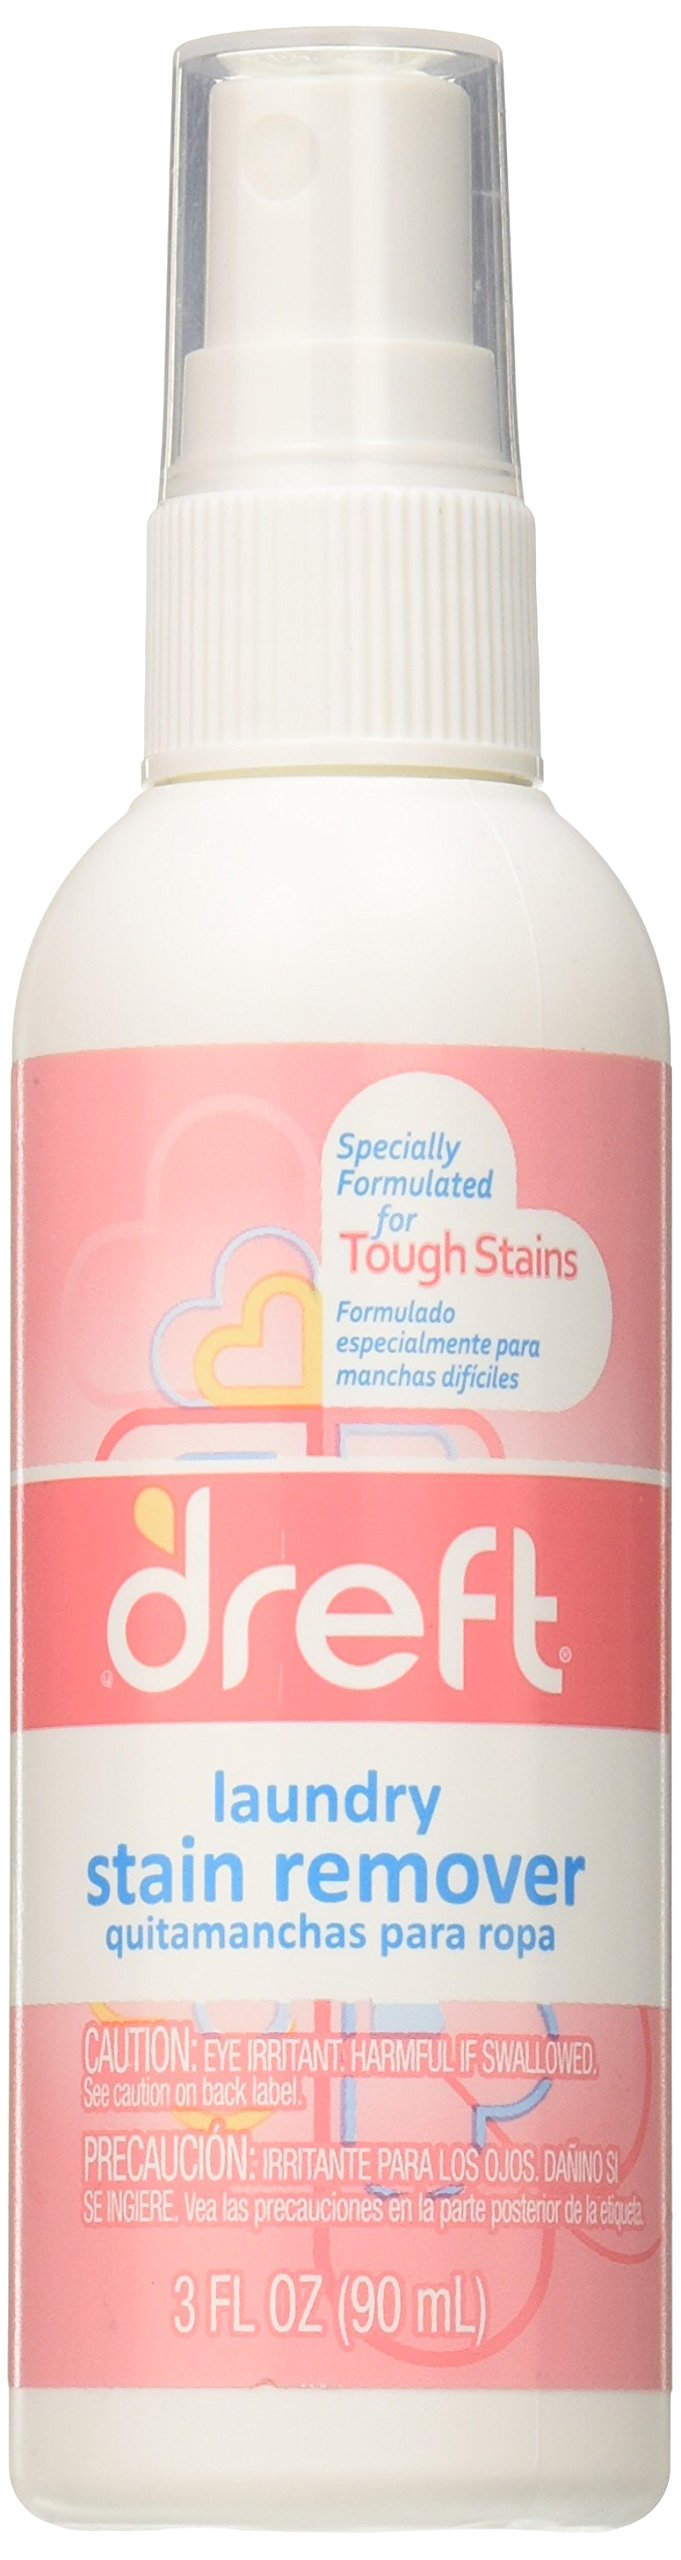 Dreft Laundry Stain Remover, Travel Size, 3 Fluid Ounce